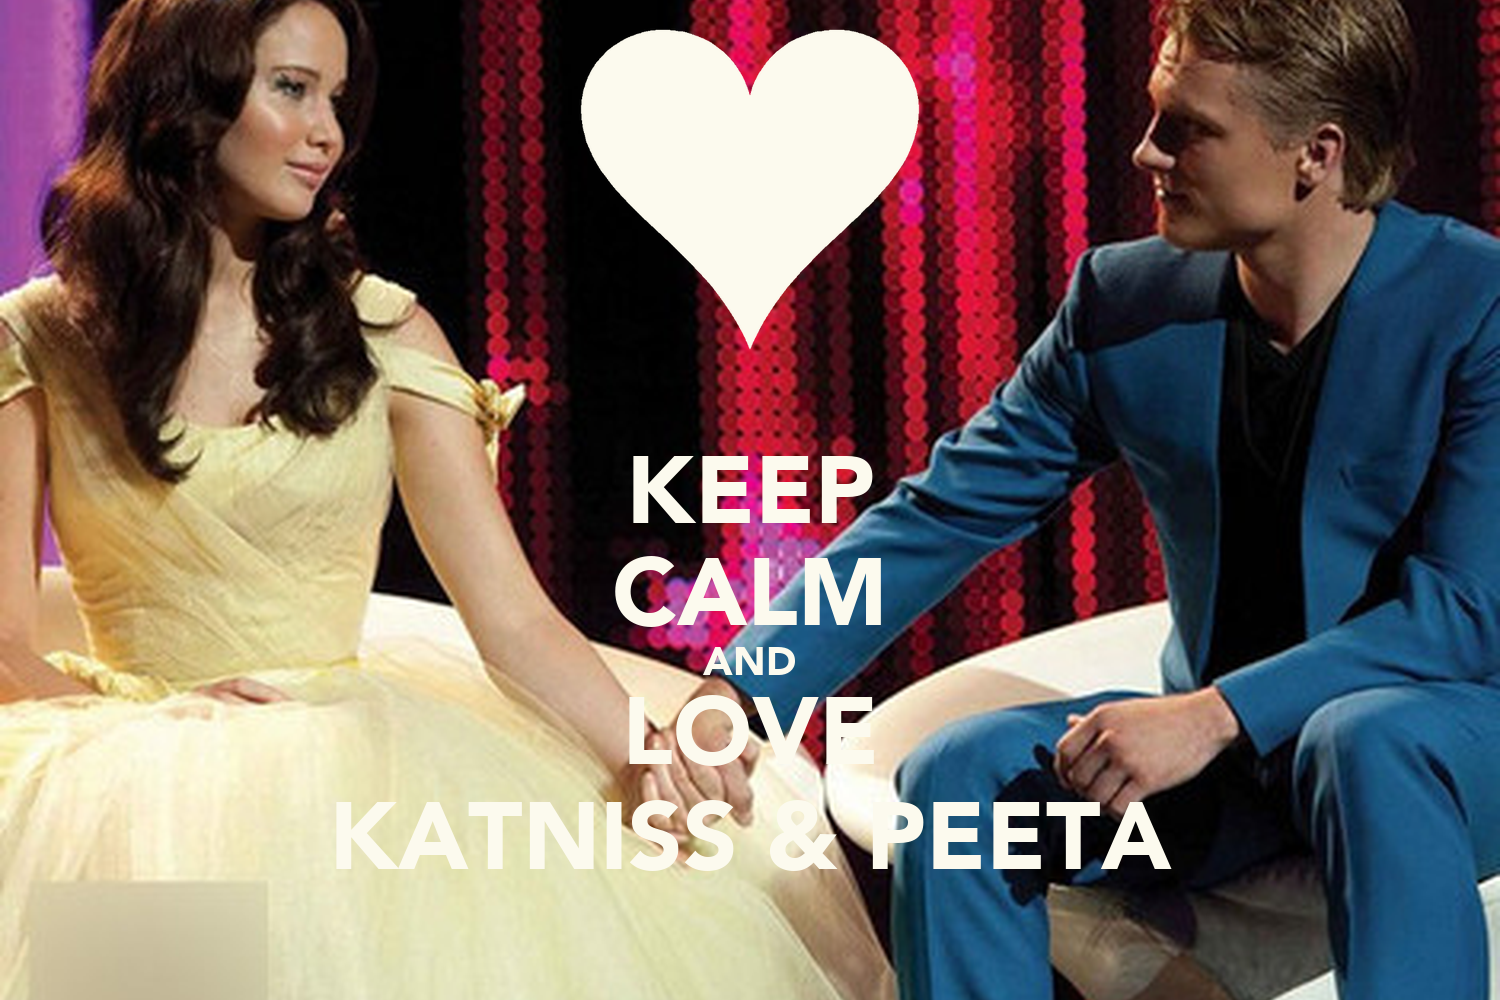 keep calm and love katniss amp peeta poster yujin keep